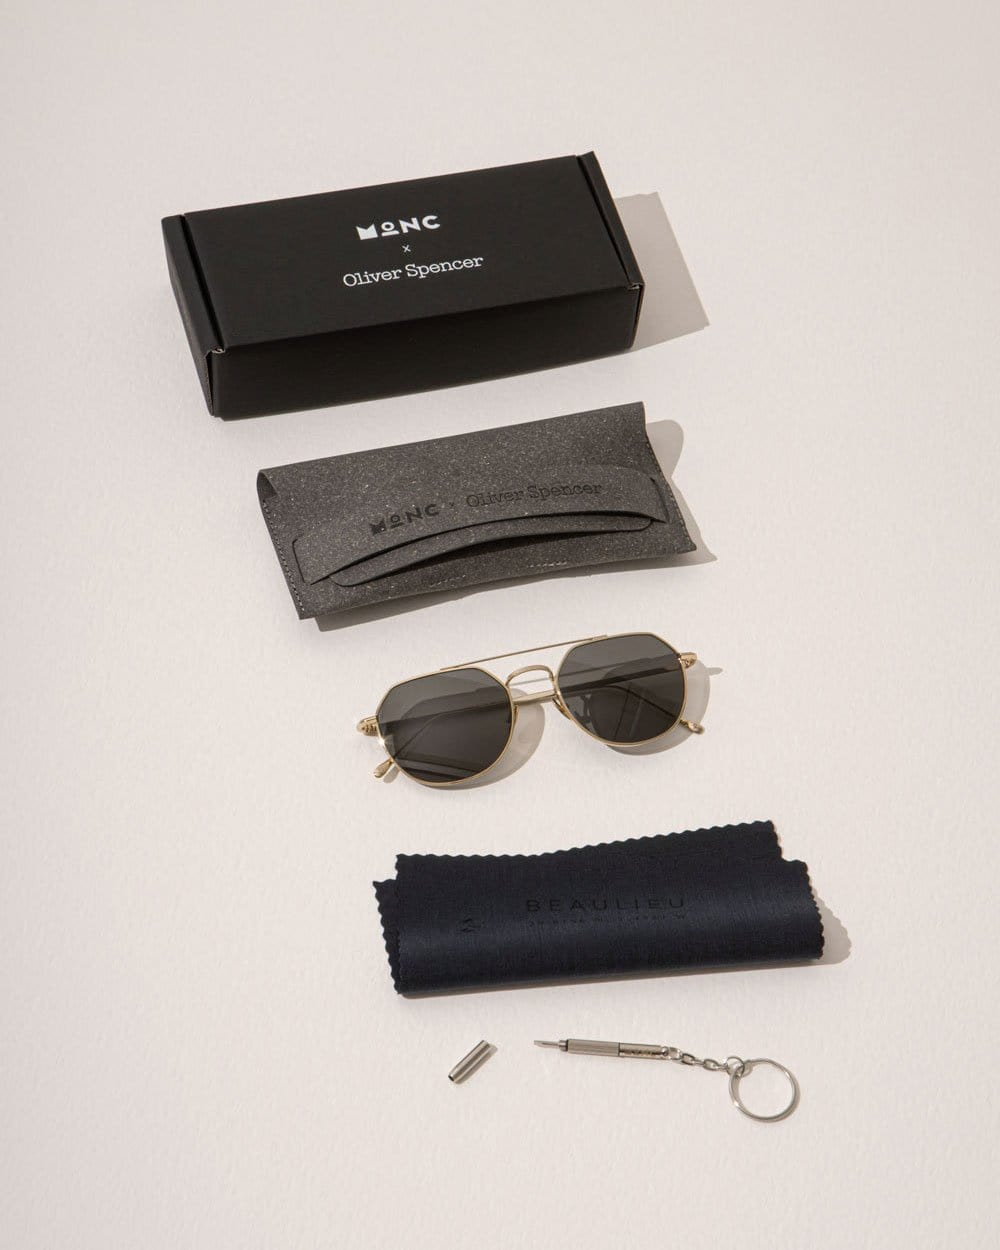 Beaulieu | Sunglasses